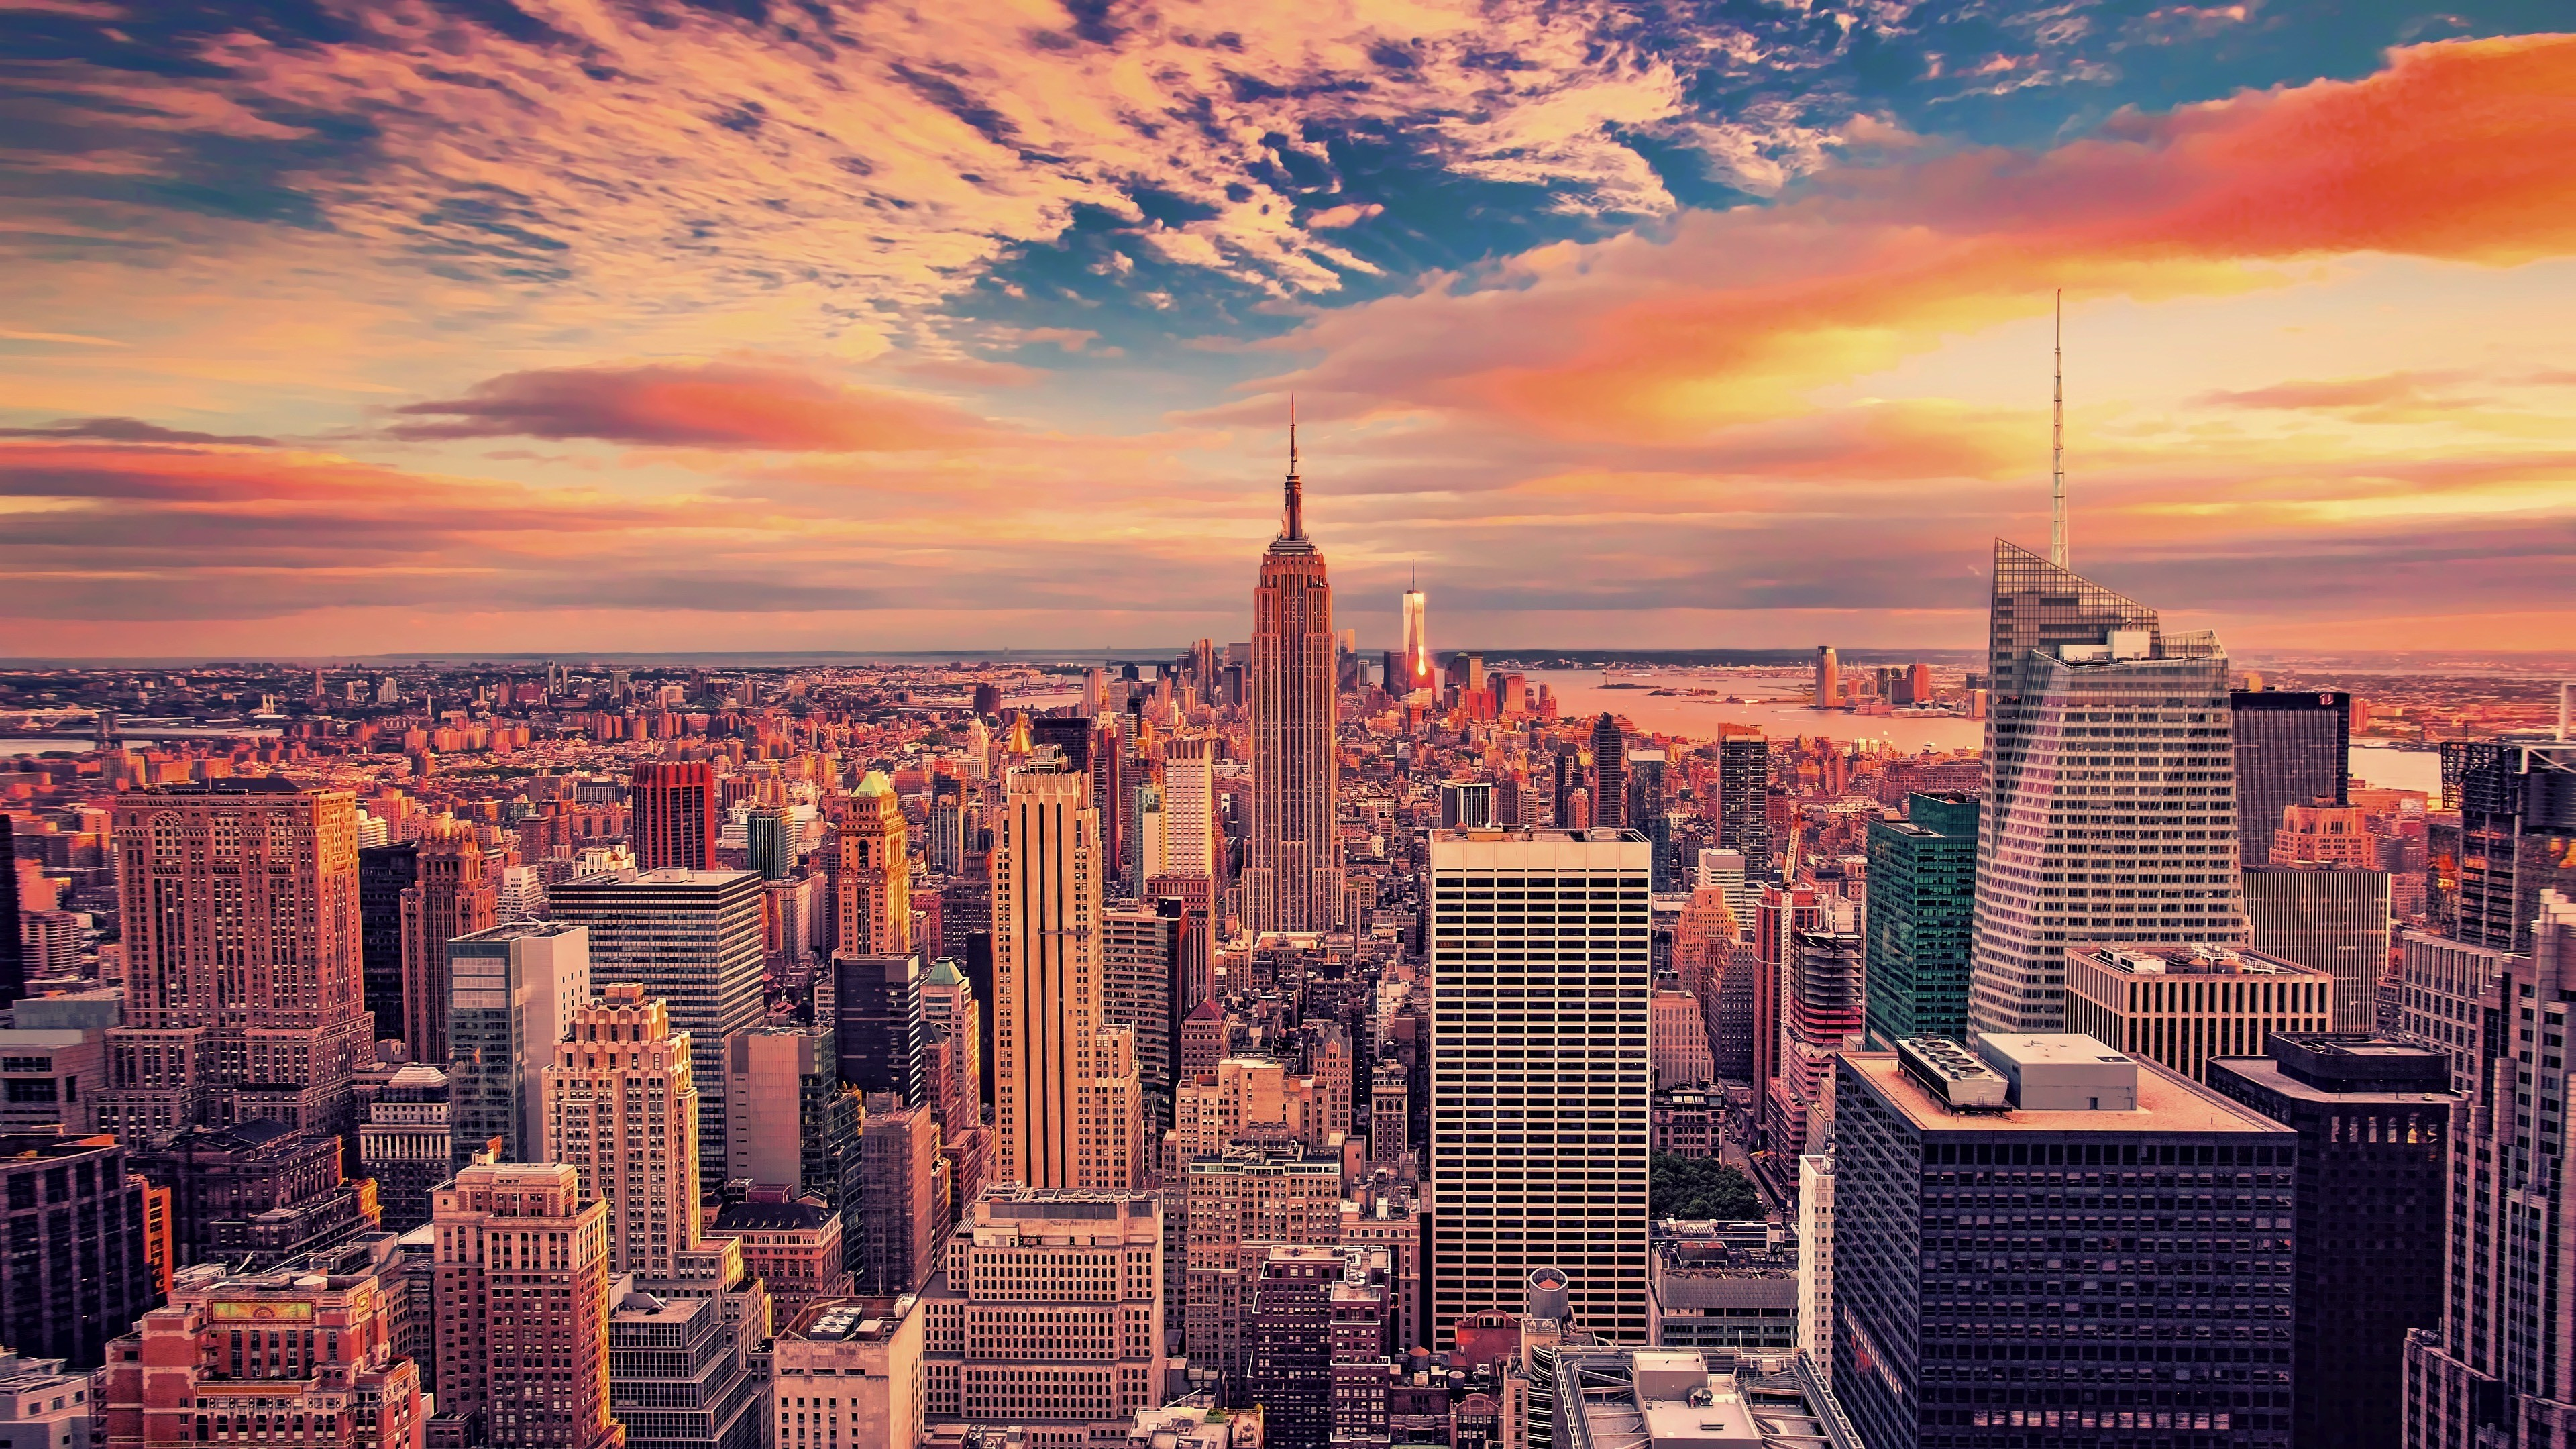 3840x2160 wallpaper Empire state building, buildings, skyscrapers, new york city, sunset, 4k